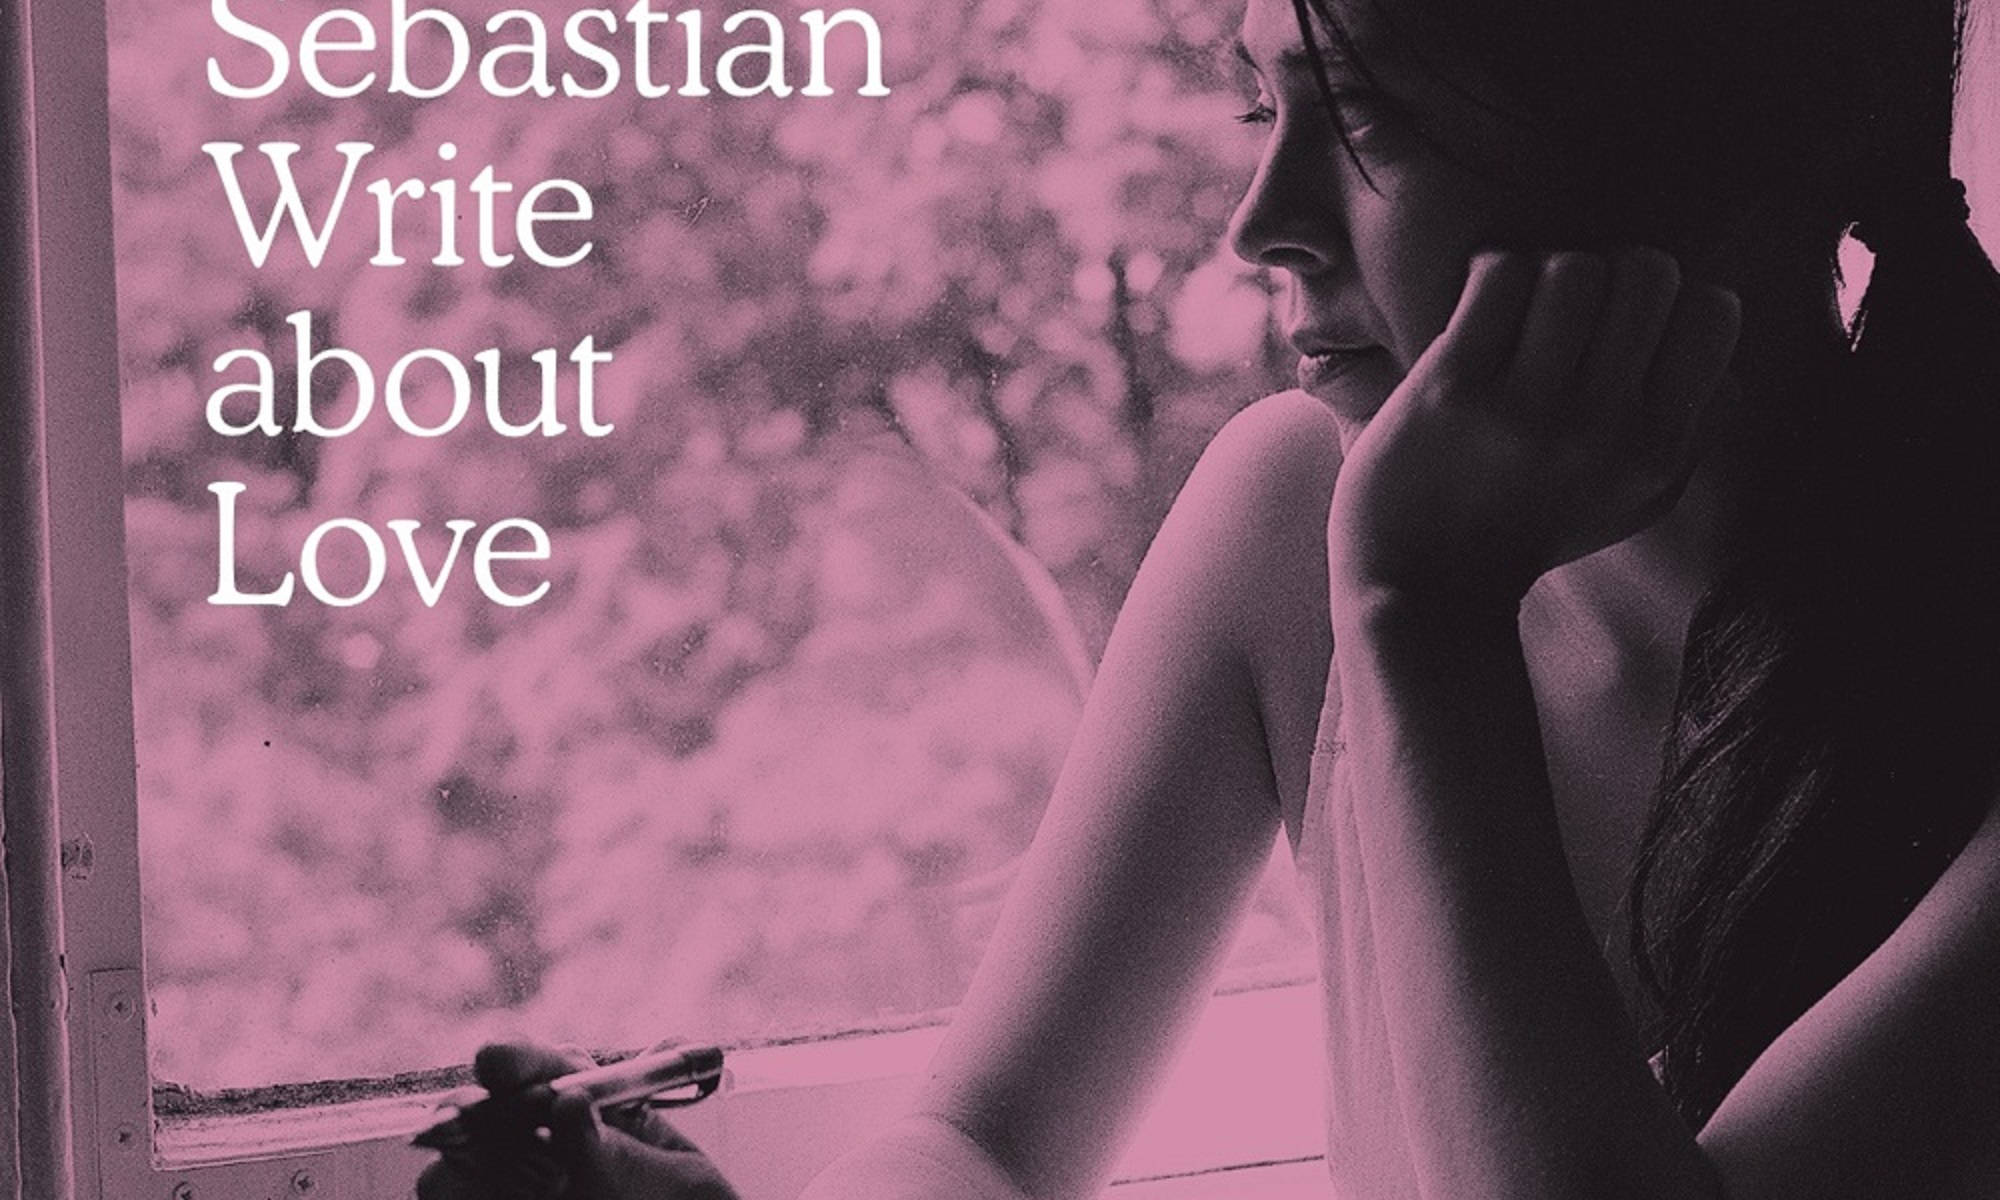 Belle And Sebastian - Write About Love - Album Review